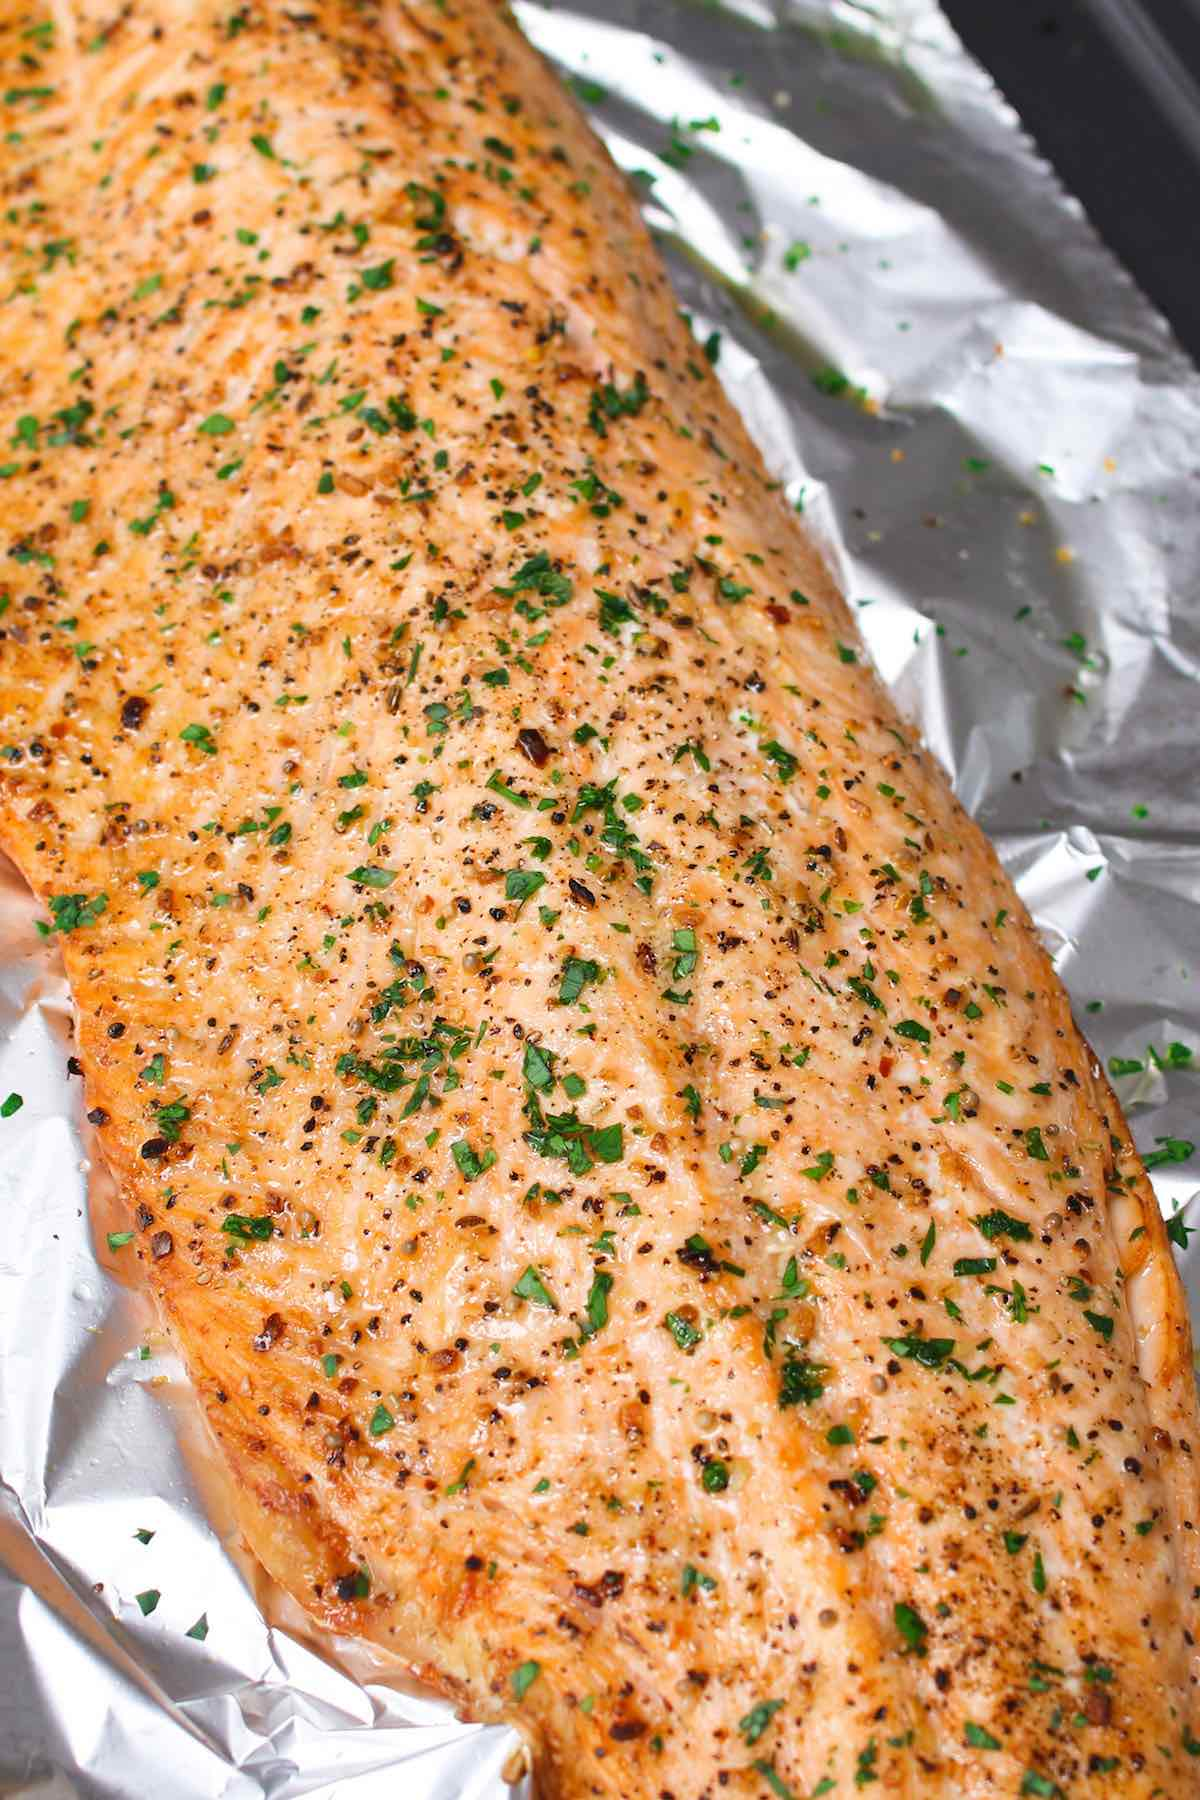 Baked Chicken Recipes Oven Videos